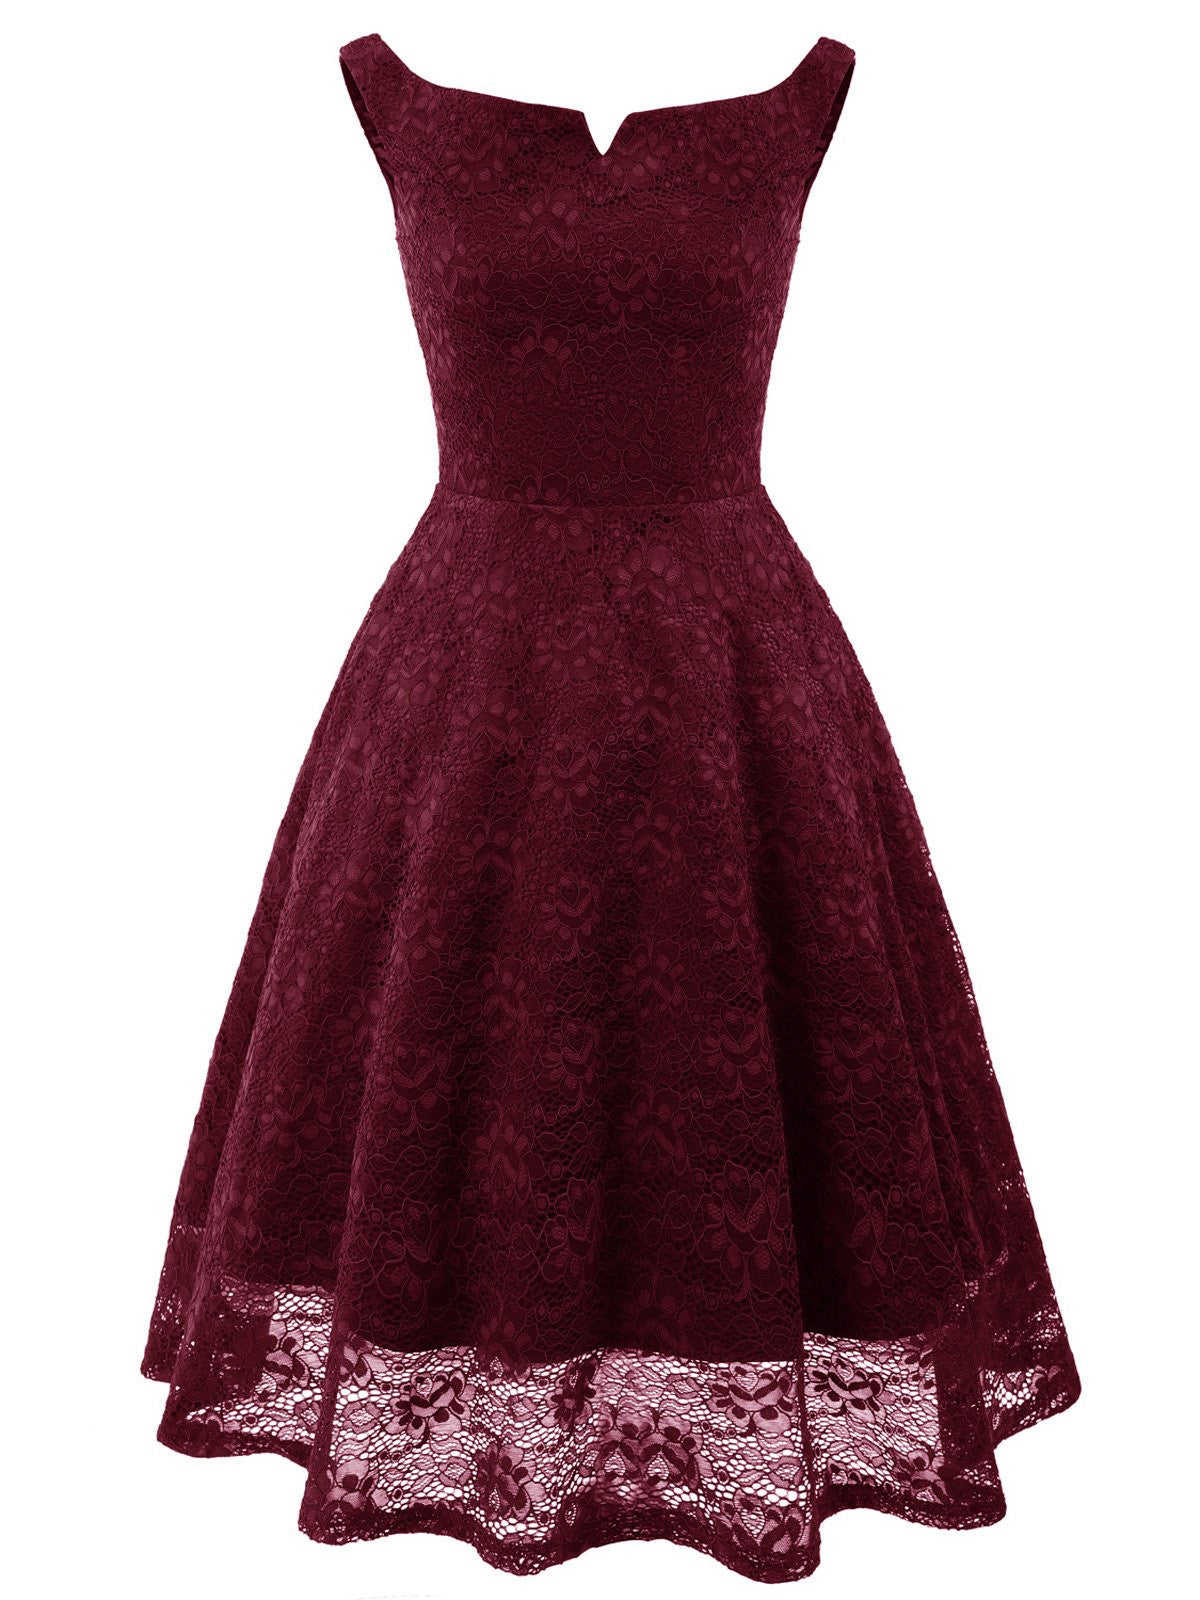 d468381b7977 1950s Lace Floral Swing Dress - Retro Stage - Chic Vintage Dresses ...